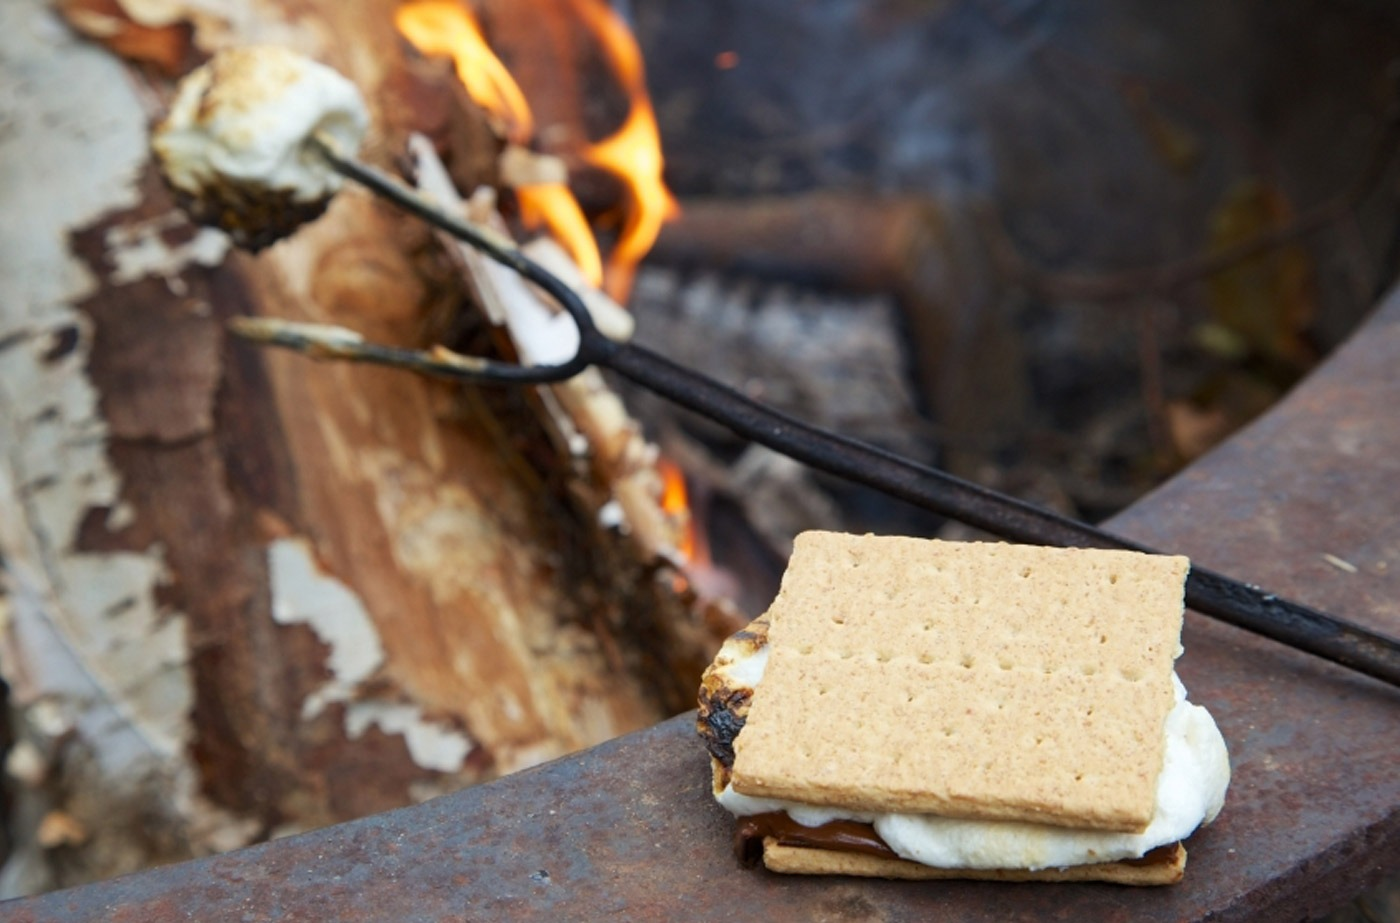 Experience s'mores night on selected evenings during the season